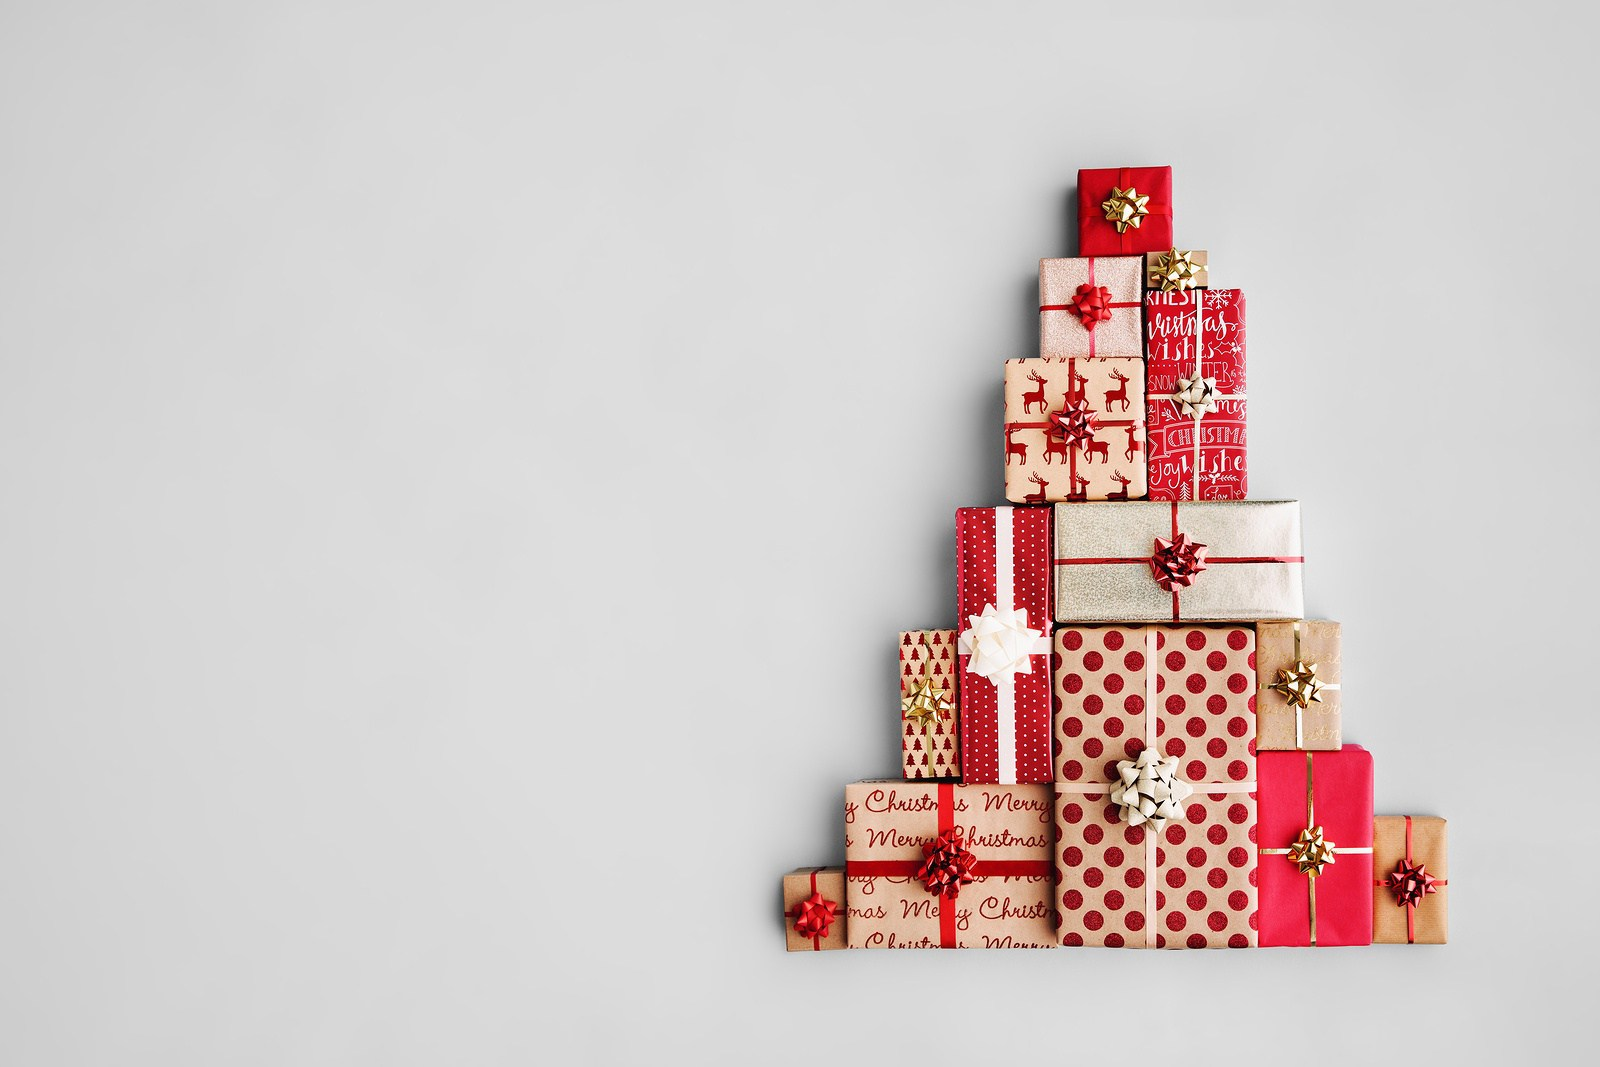 Irish Christmas Gifts Ideas For Younger Children